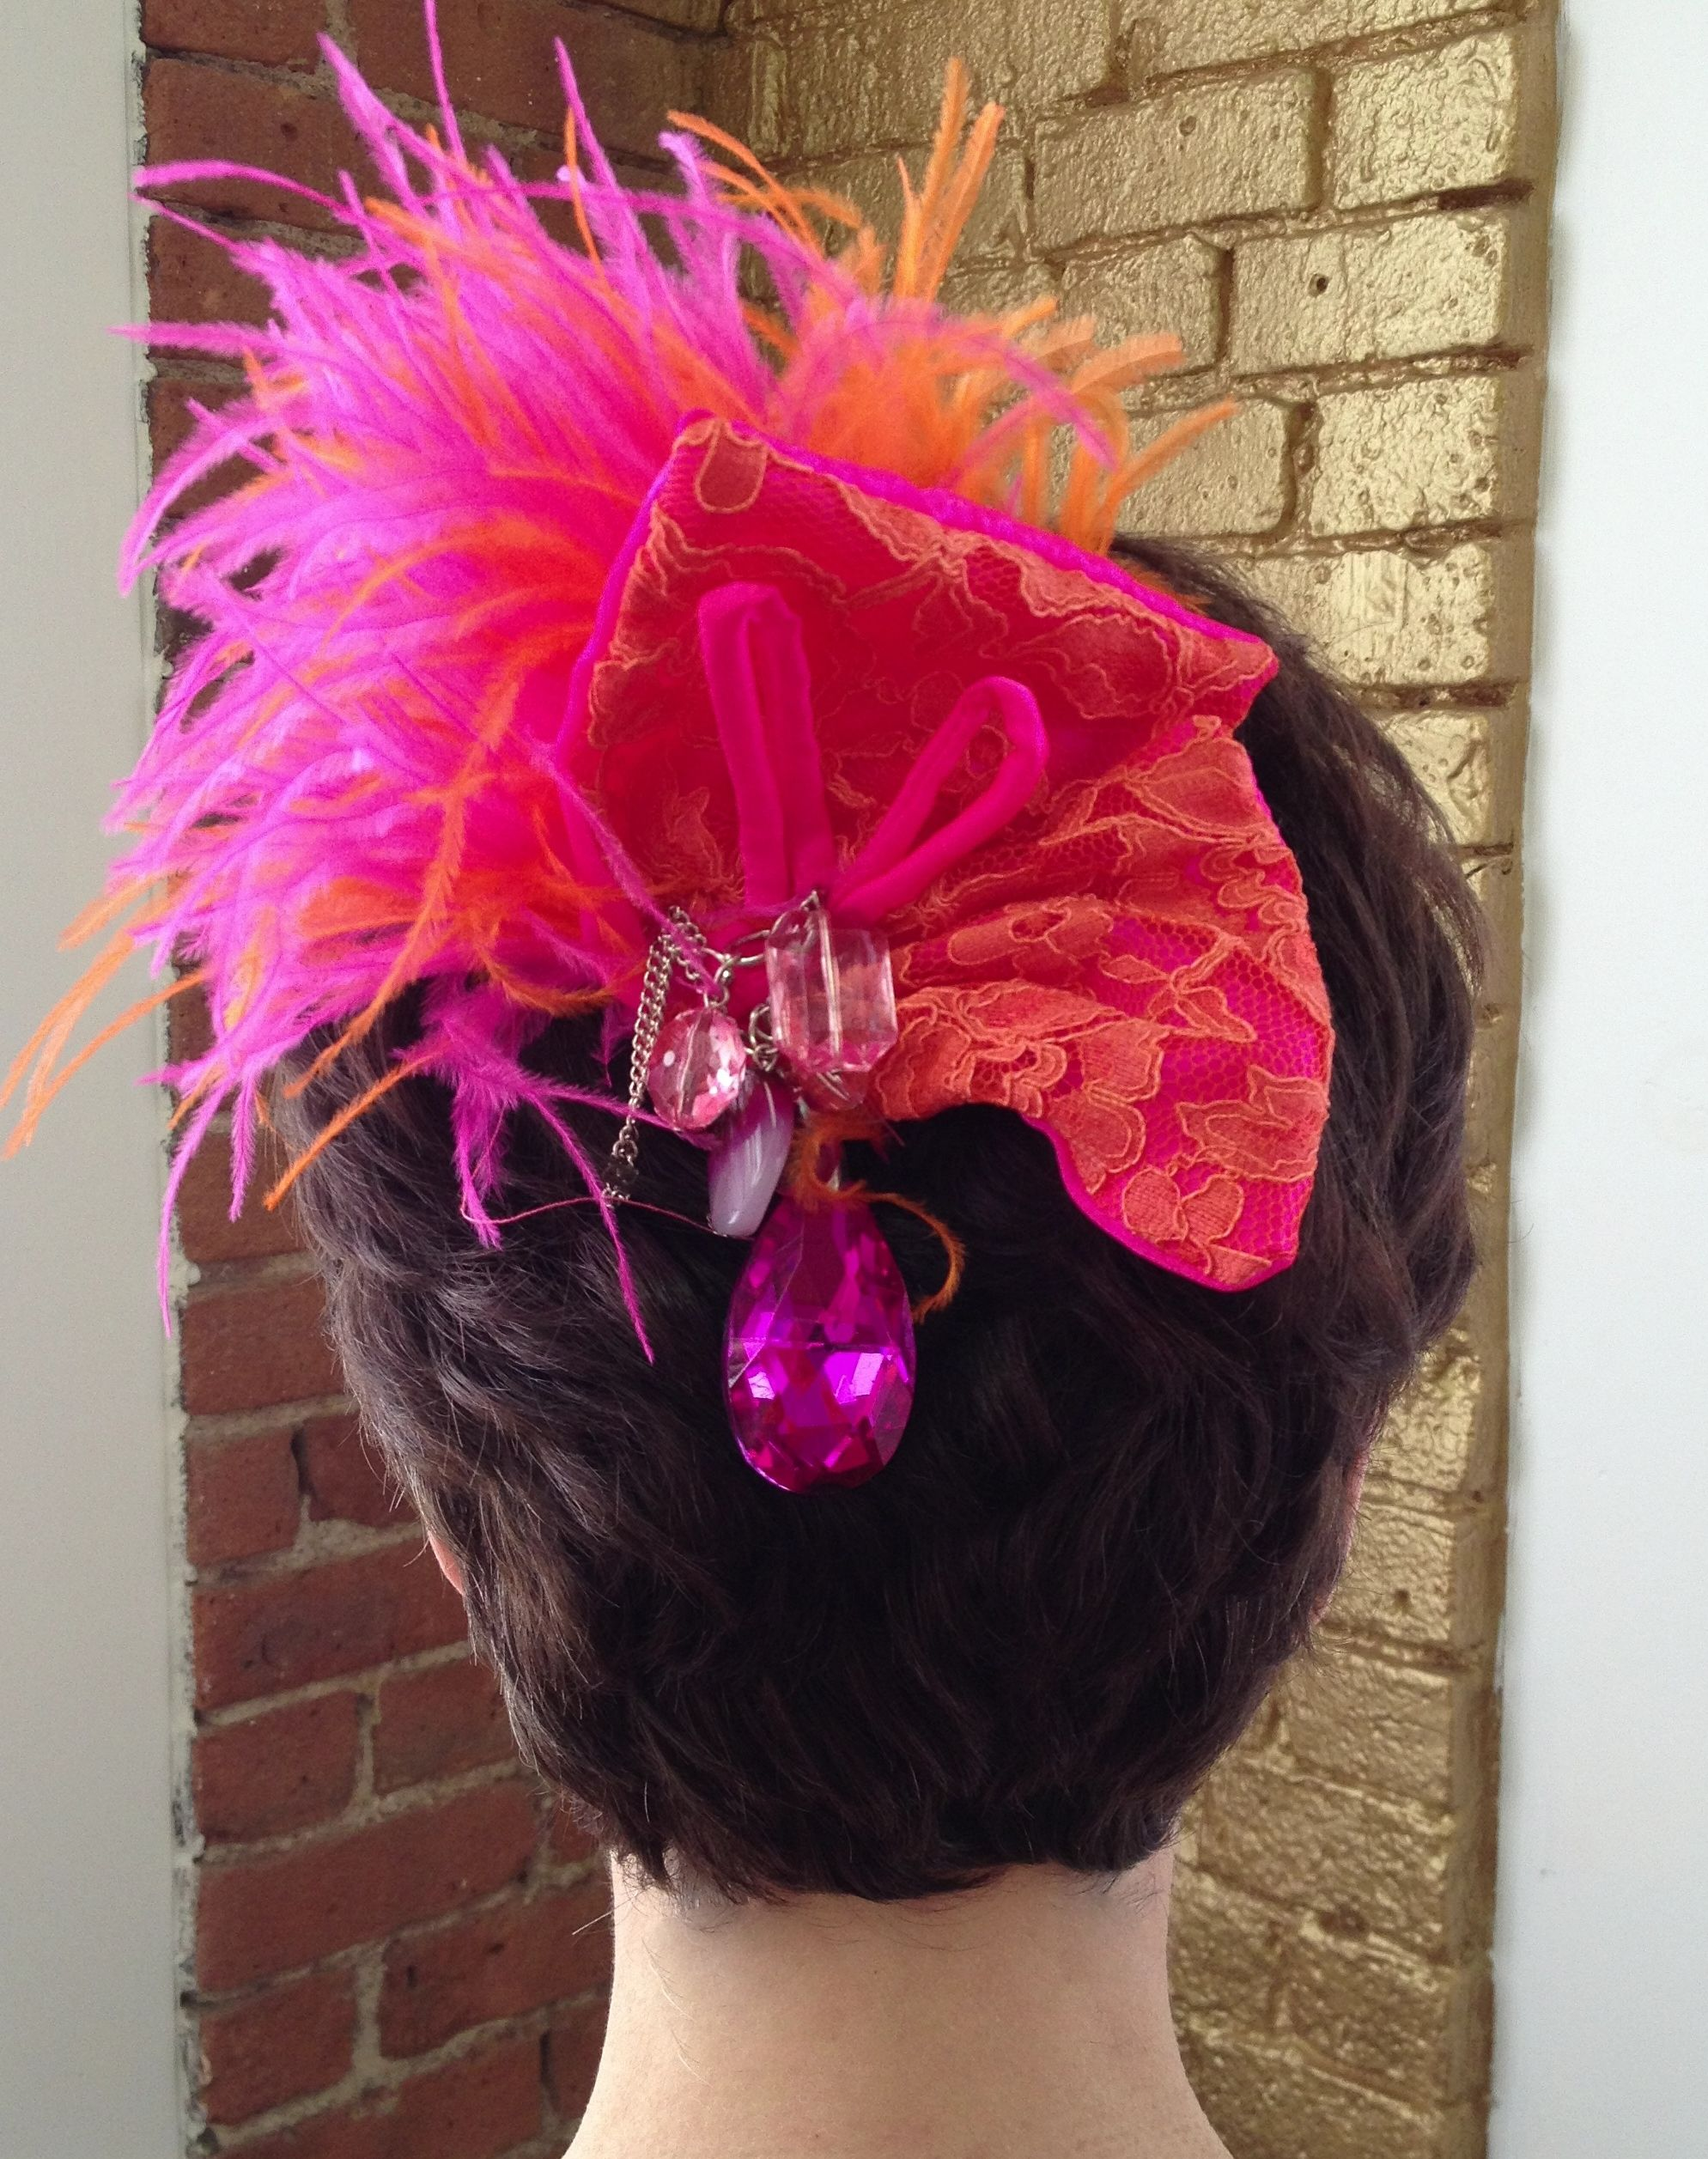 Add Some Color To Your Day With This Wild And Funky Hair Clip Find Pin More On My Big Fat American Gypsy Wedding Season 2